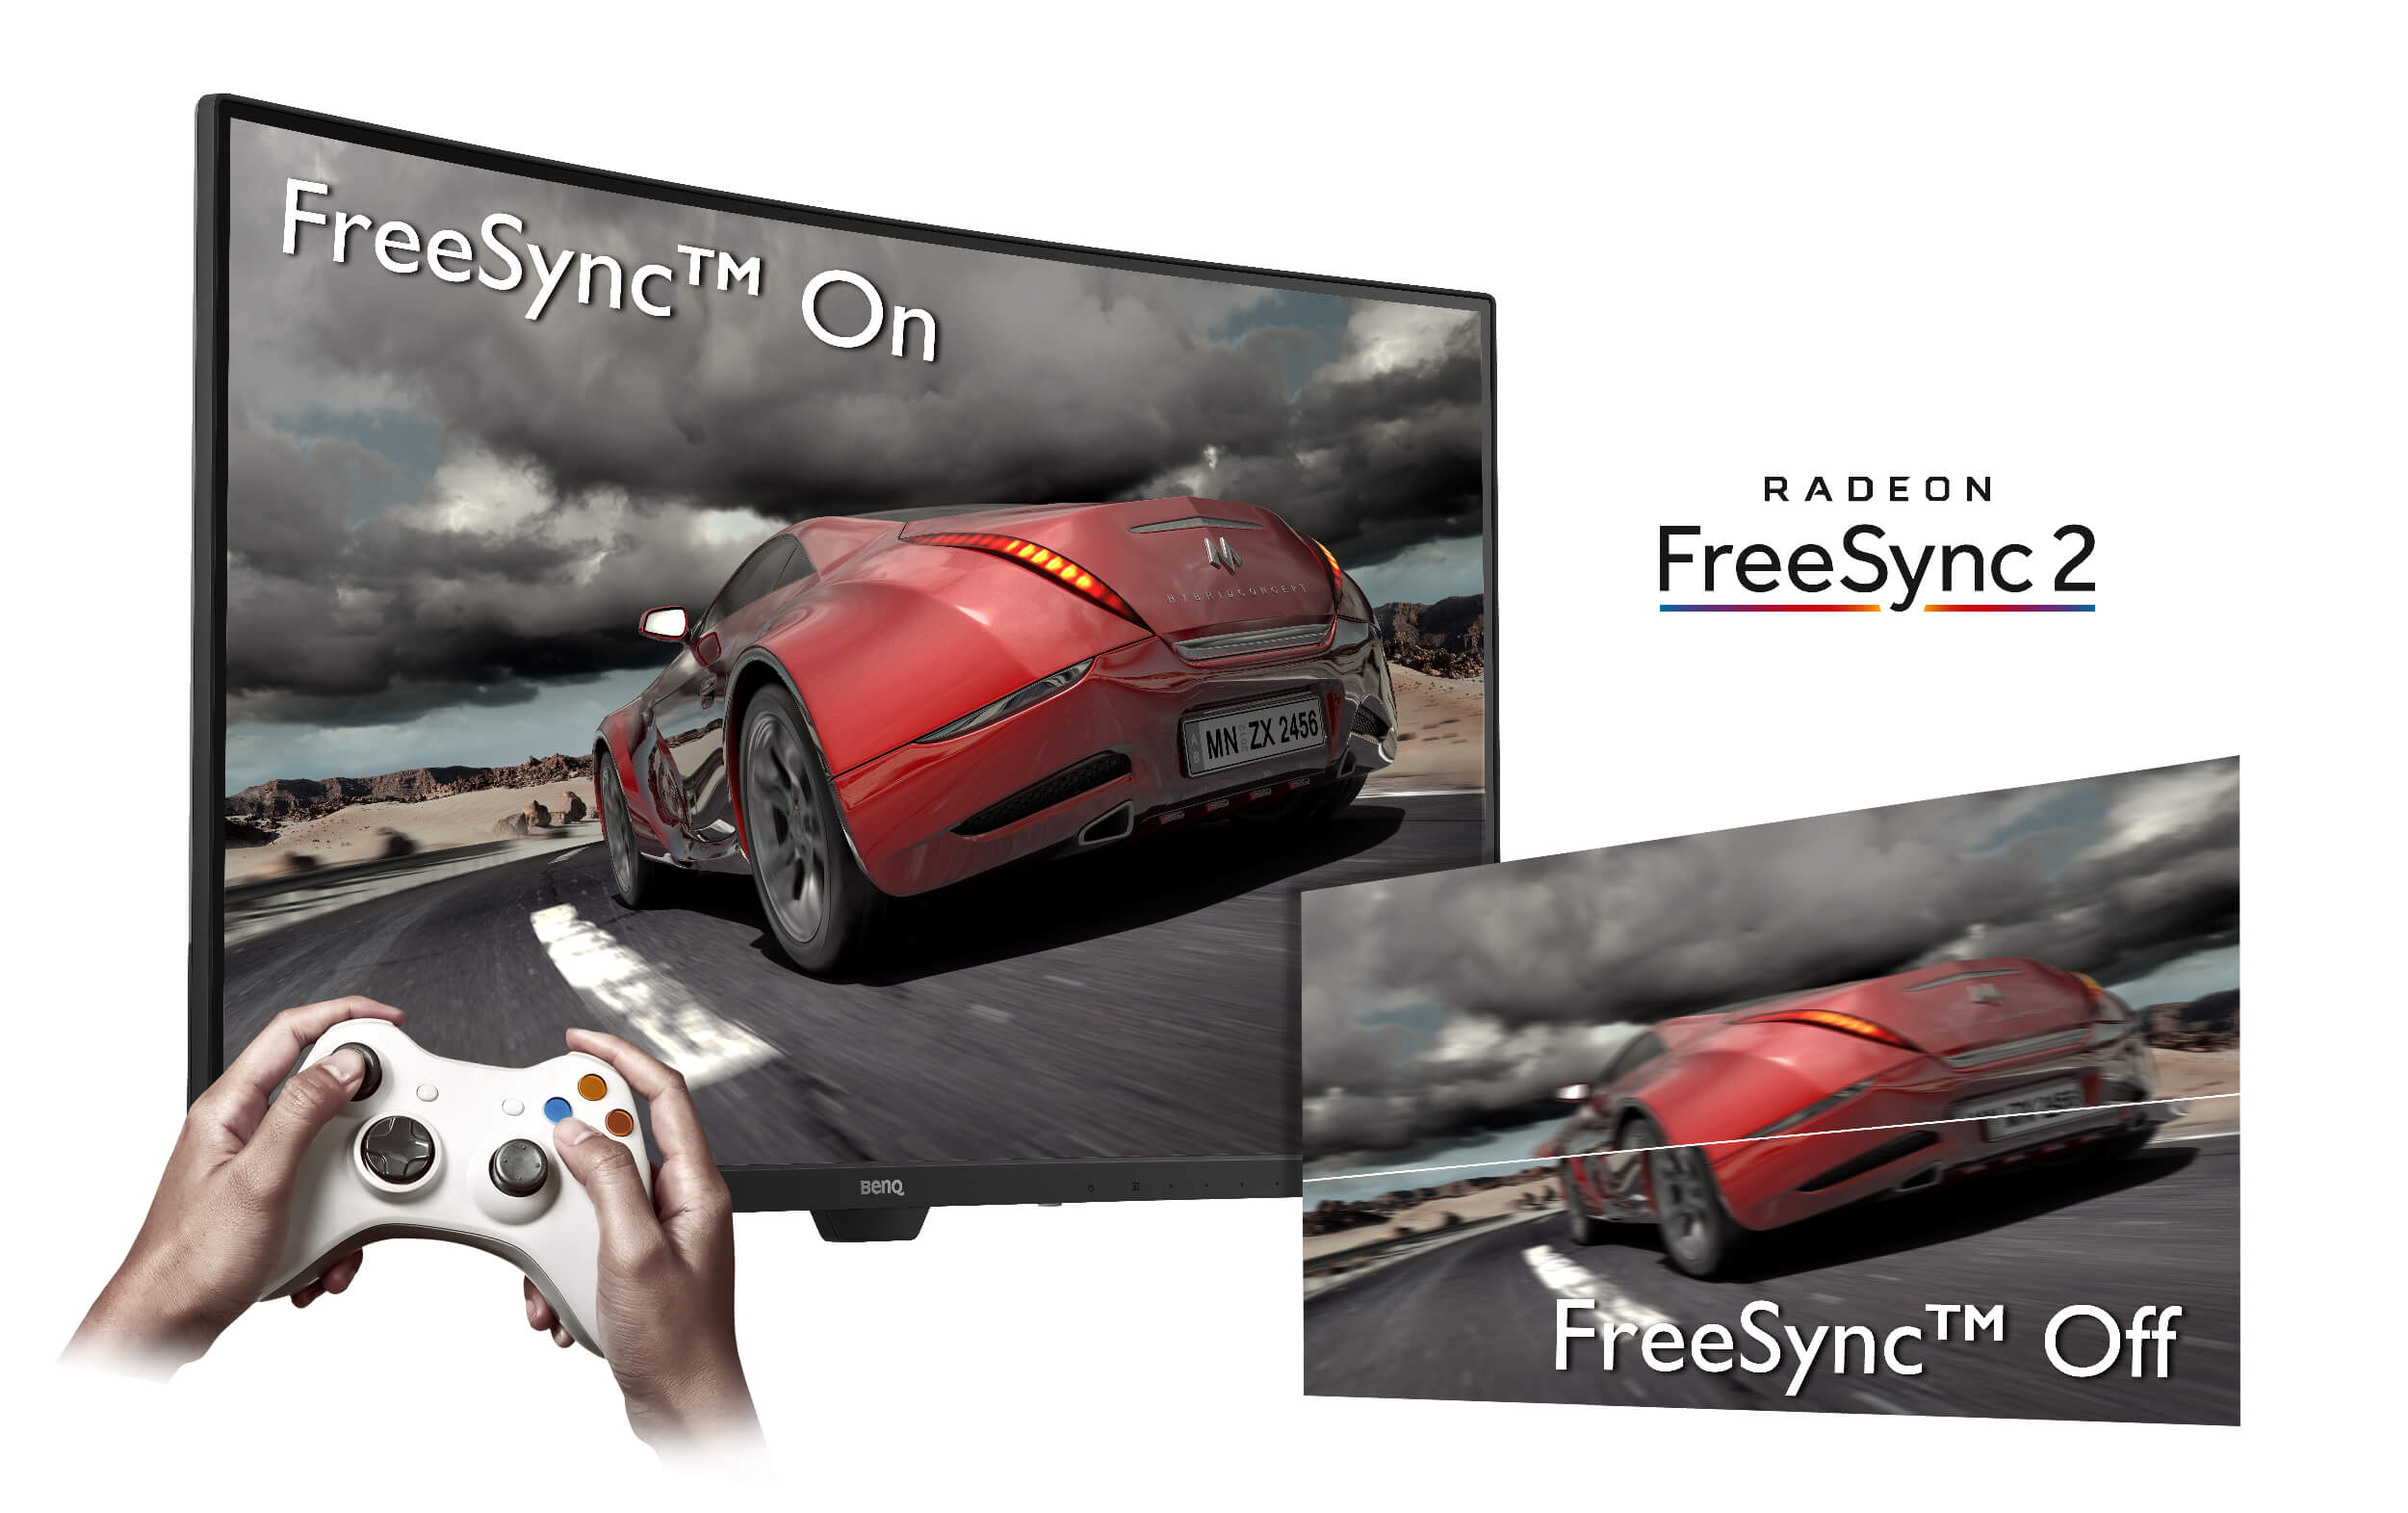 FreeSync compatible monitors prevent tearing up of the image.